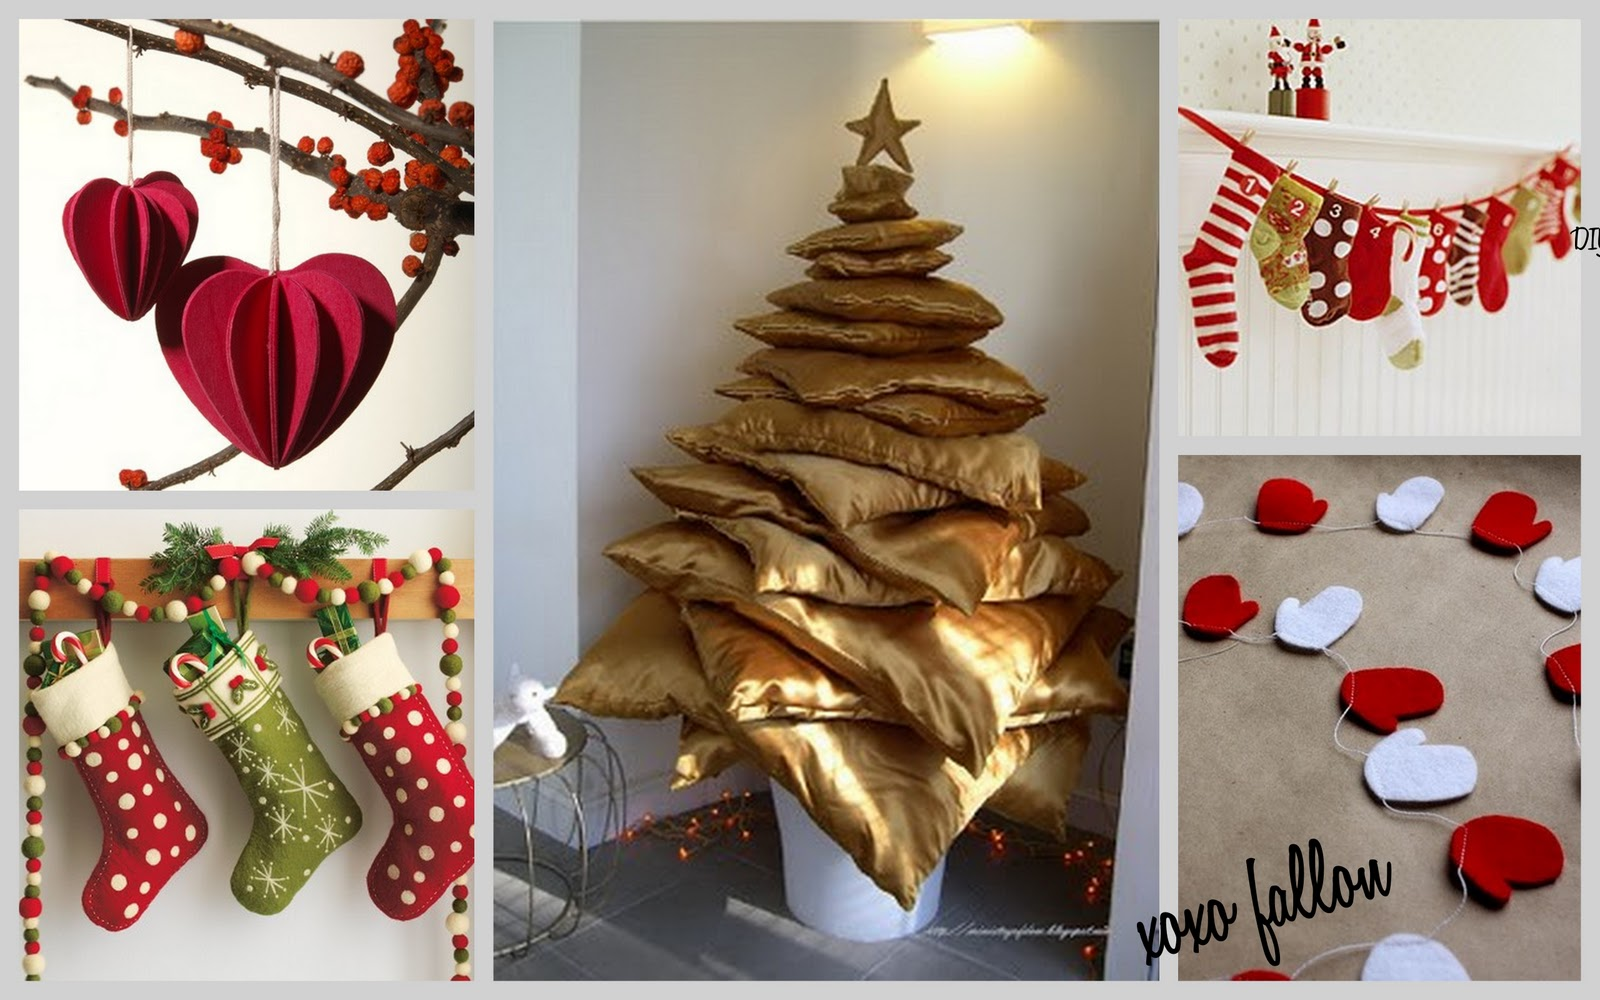 Fairytale Wishes and Dreams: DIY Christmas Decor